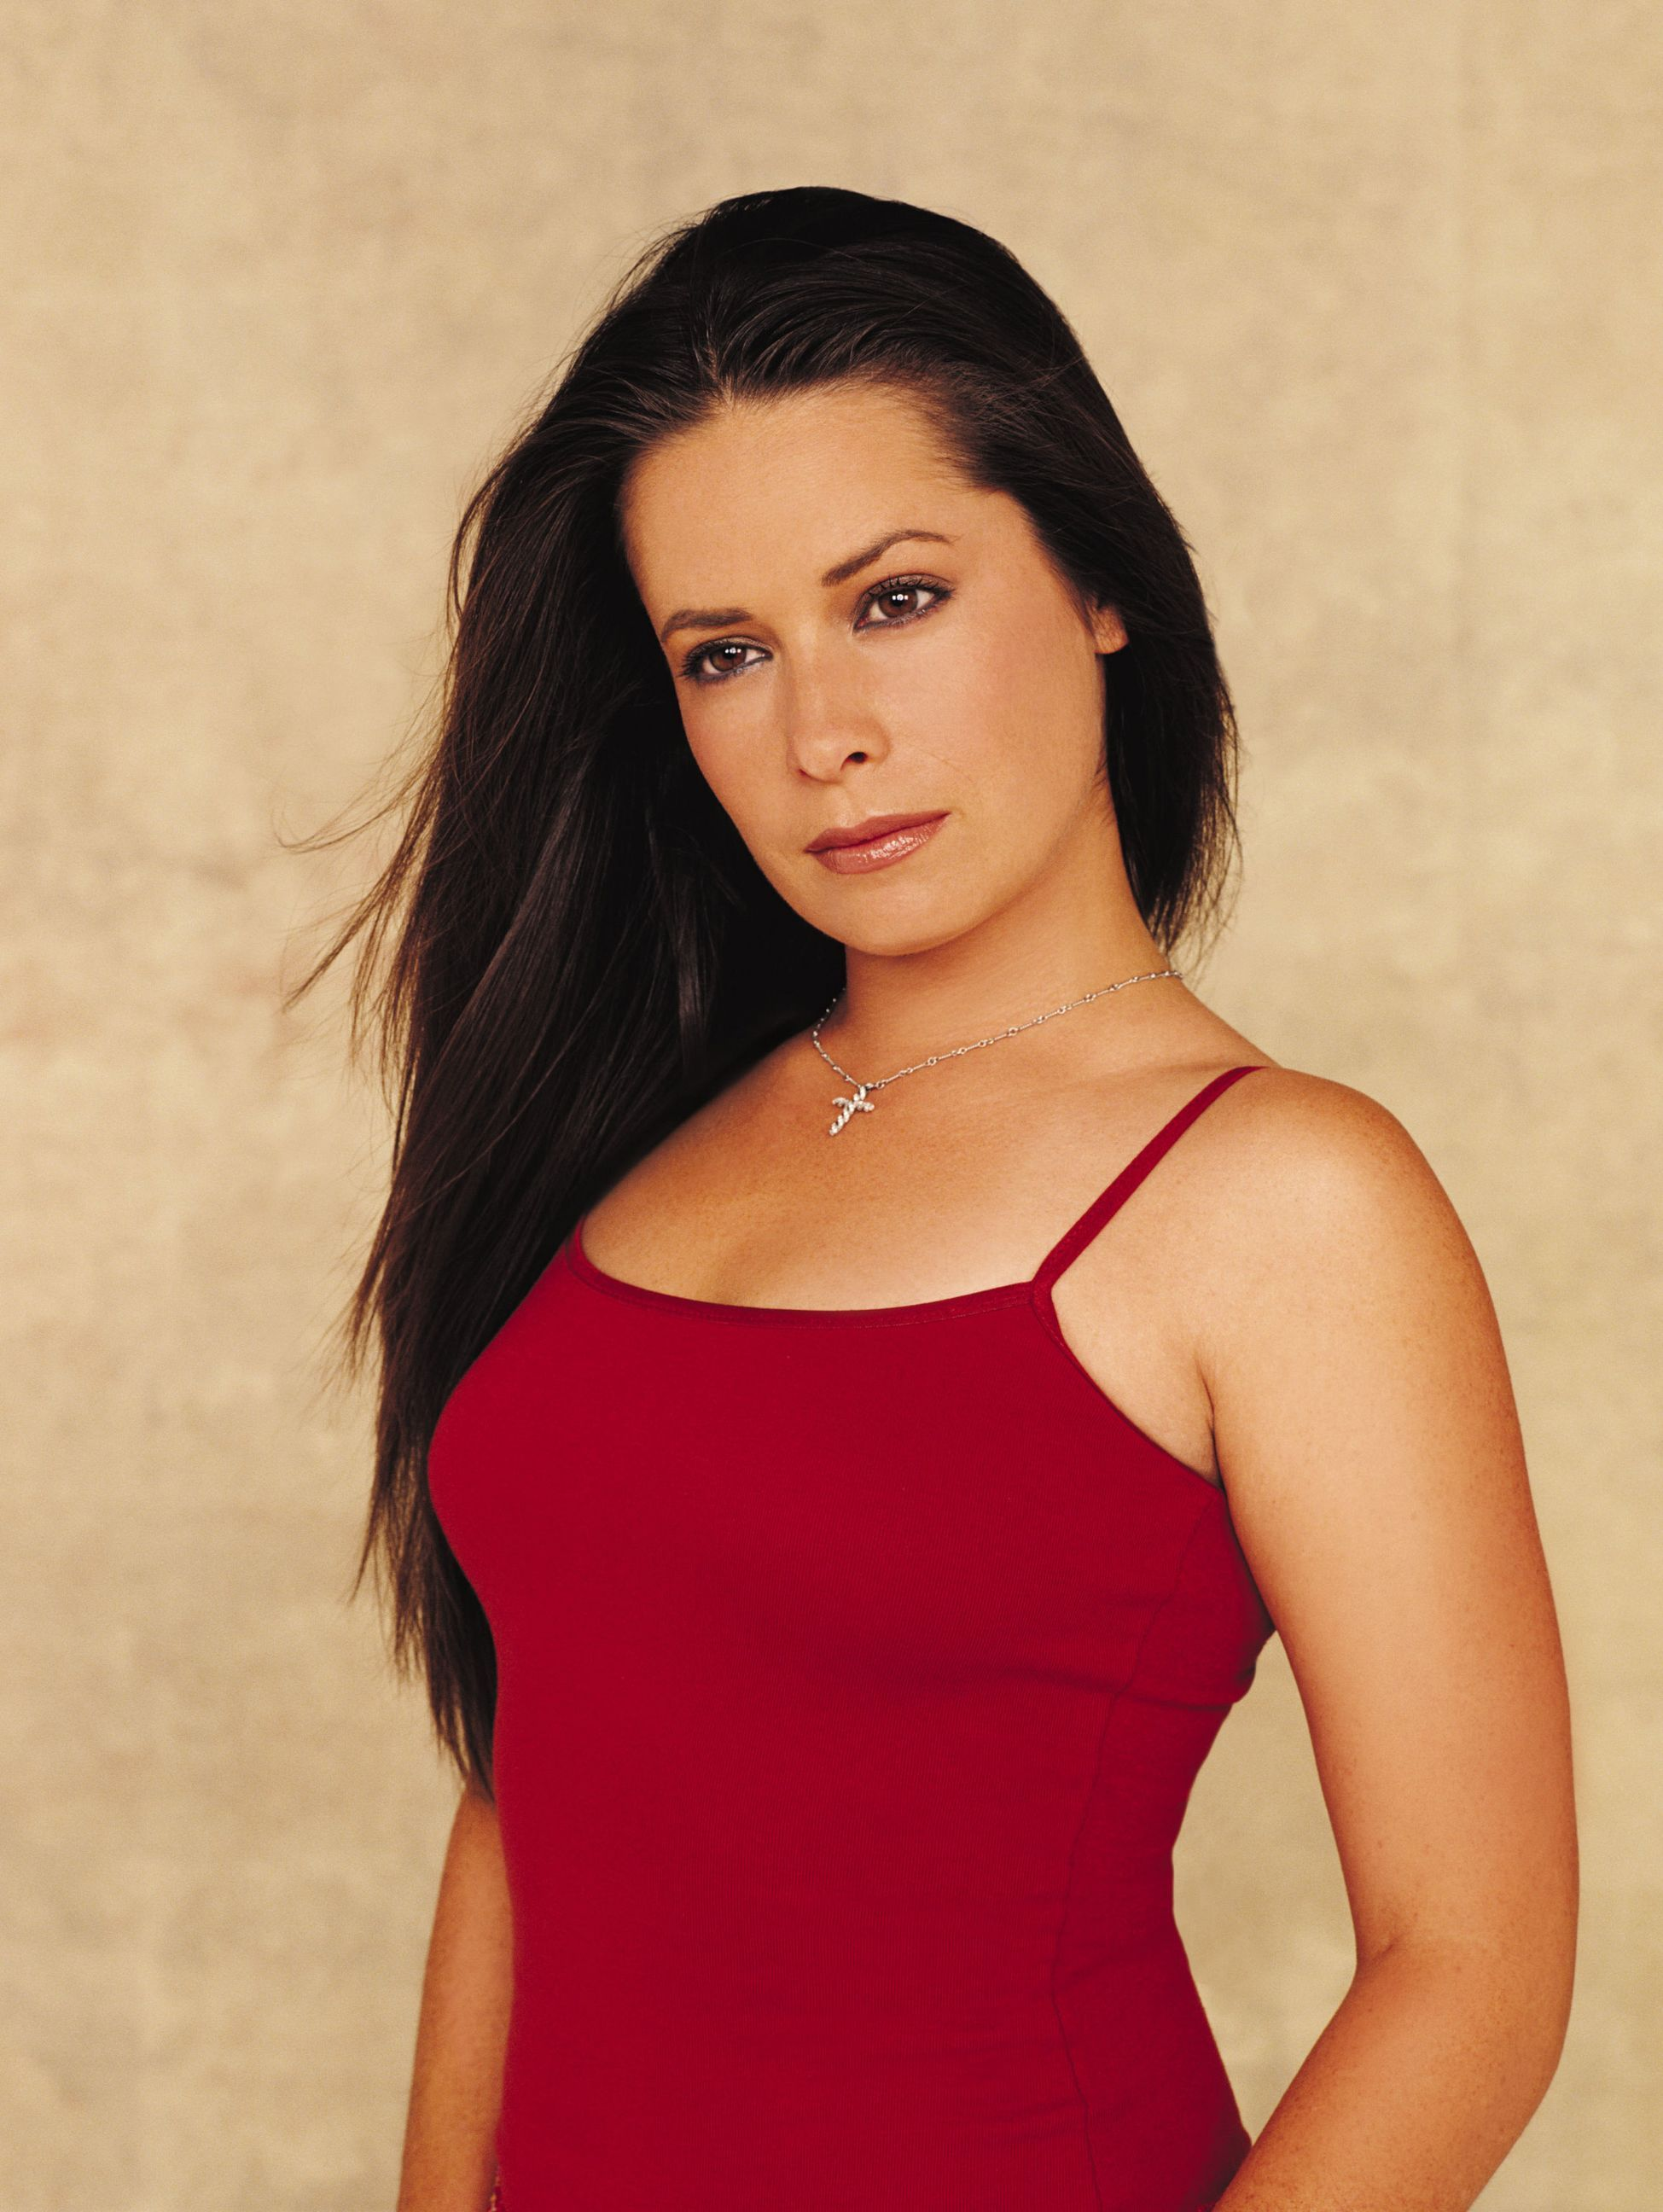 Holly marie combs panties apologise, but